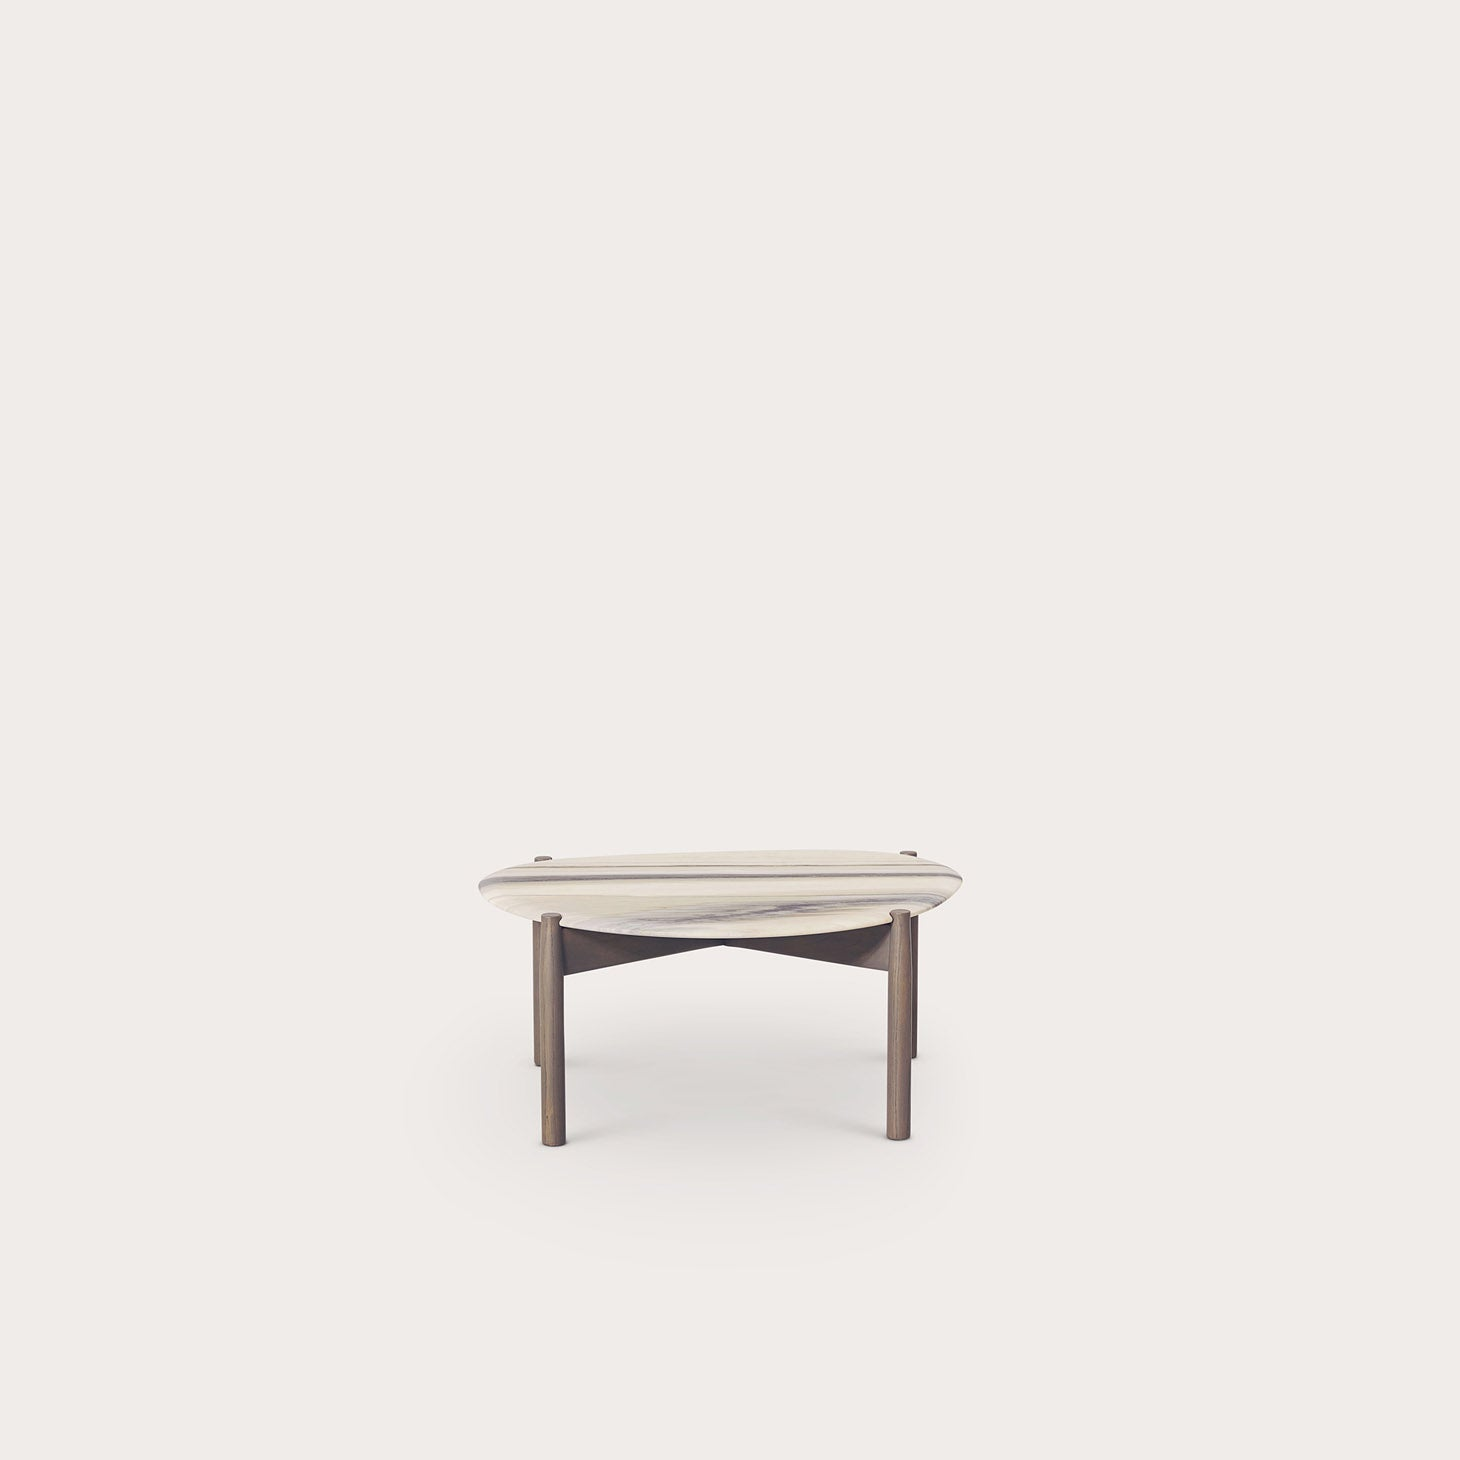 Heath Tables Yabu Pushelberg Designer Furniture Sku: 247-230-10293